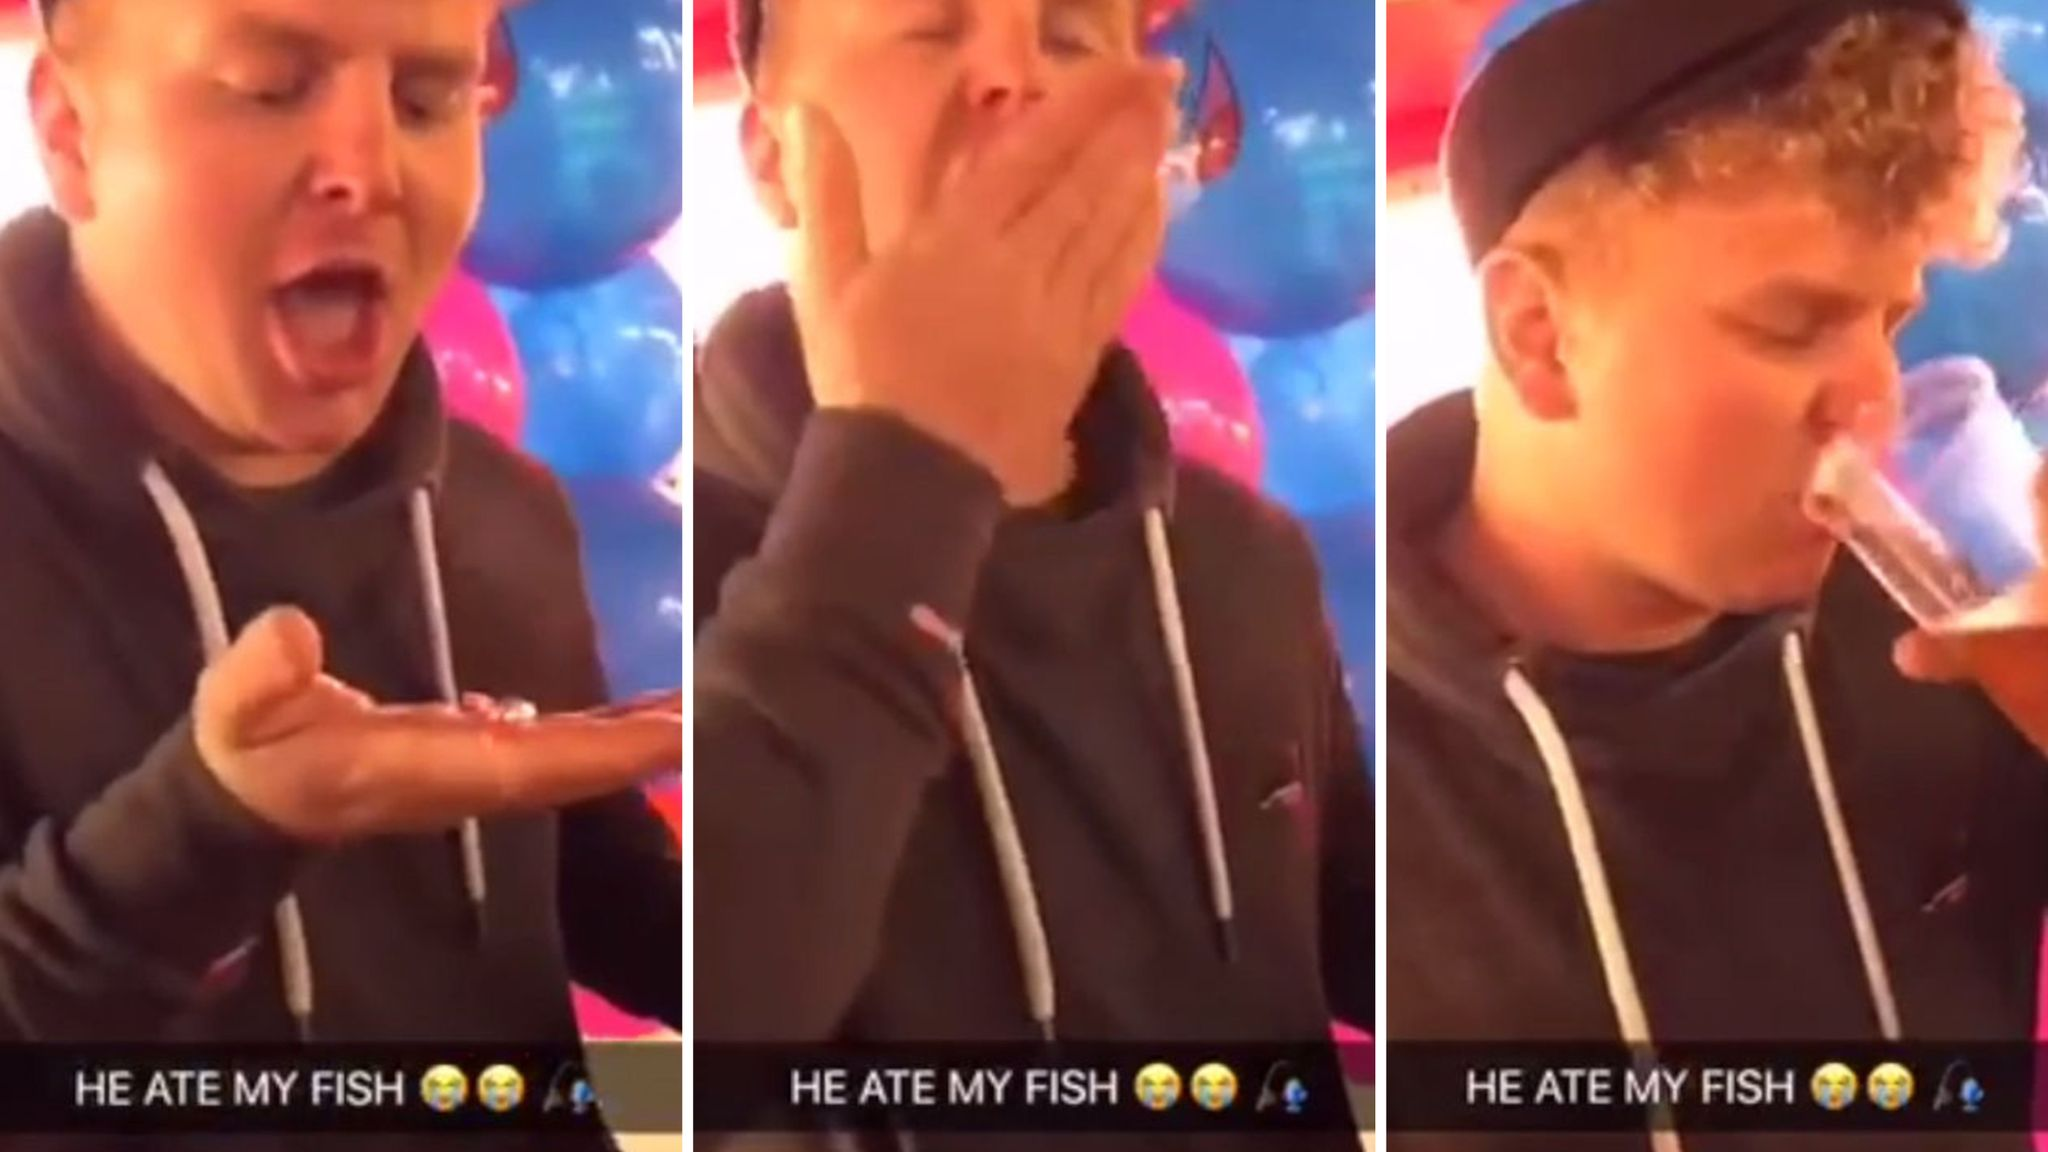 sky.com - Man fined £385 after swallowing live goldfish in clip posted on Snapchat